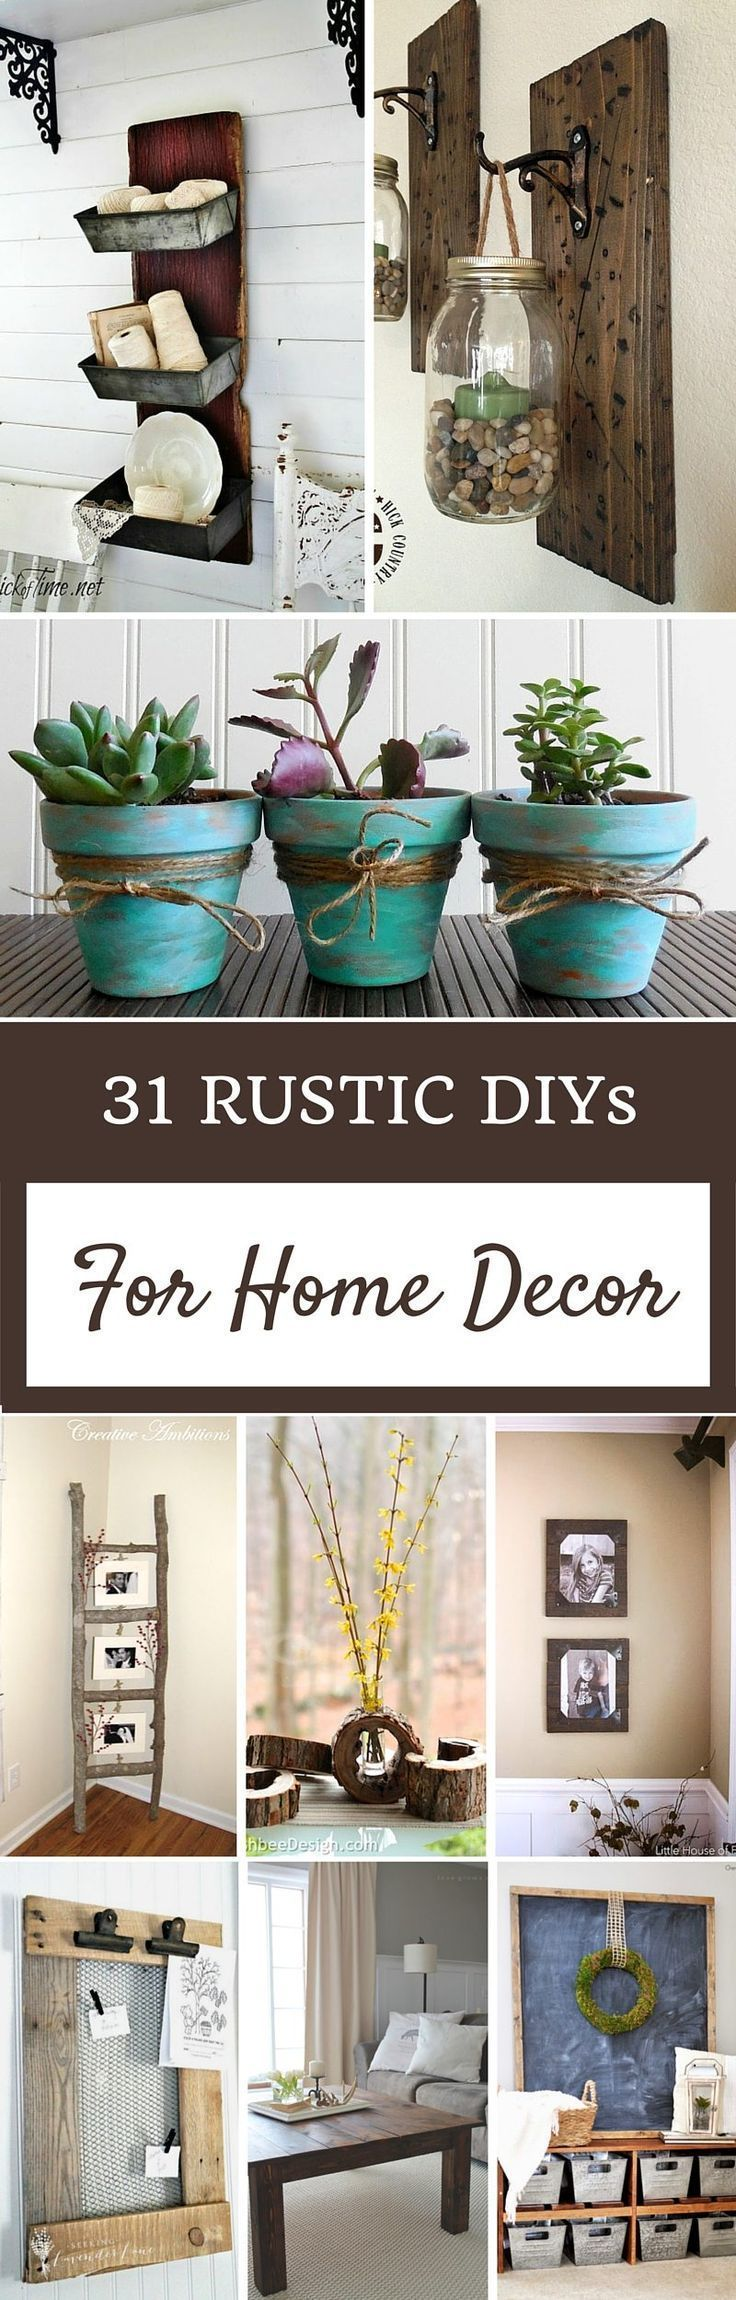 1000+ ideas about Diy Home Decor Projects on Pinterest ...